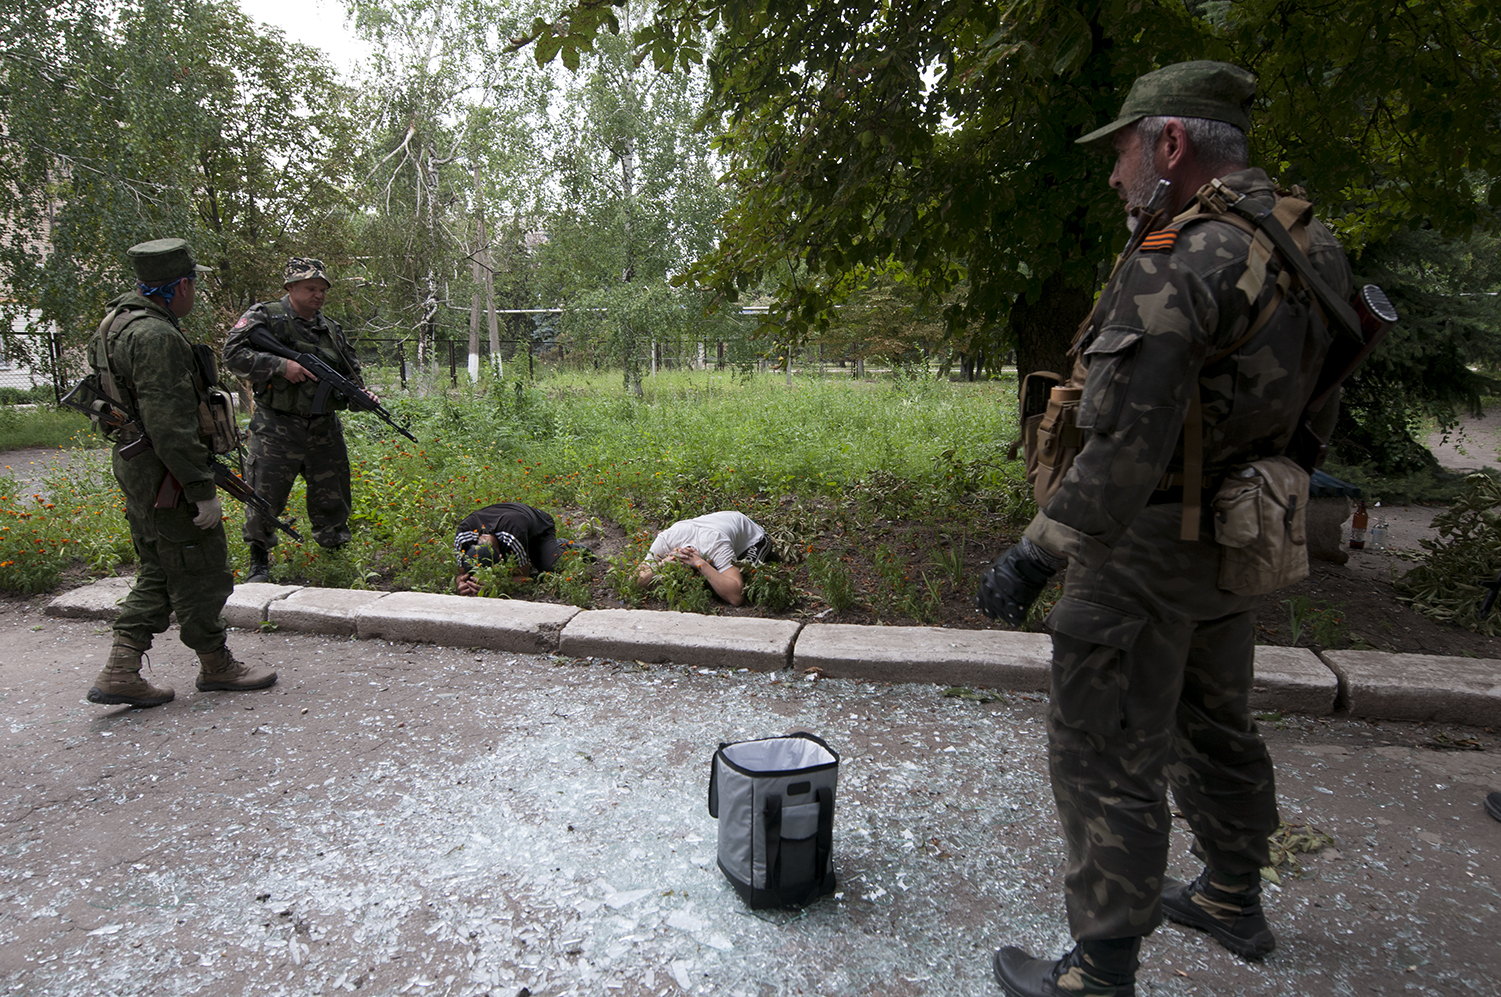 As the bag of looted goods lies in the middle of scattered pieces of glass, the two men are putting their faces against the ground after the soldiers shouted at them to do so, one of them received a kick to the ribs in the process.